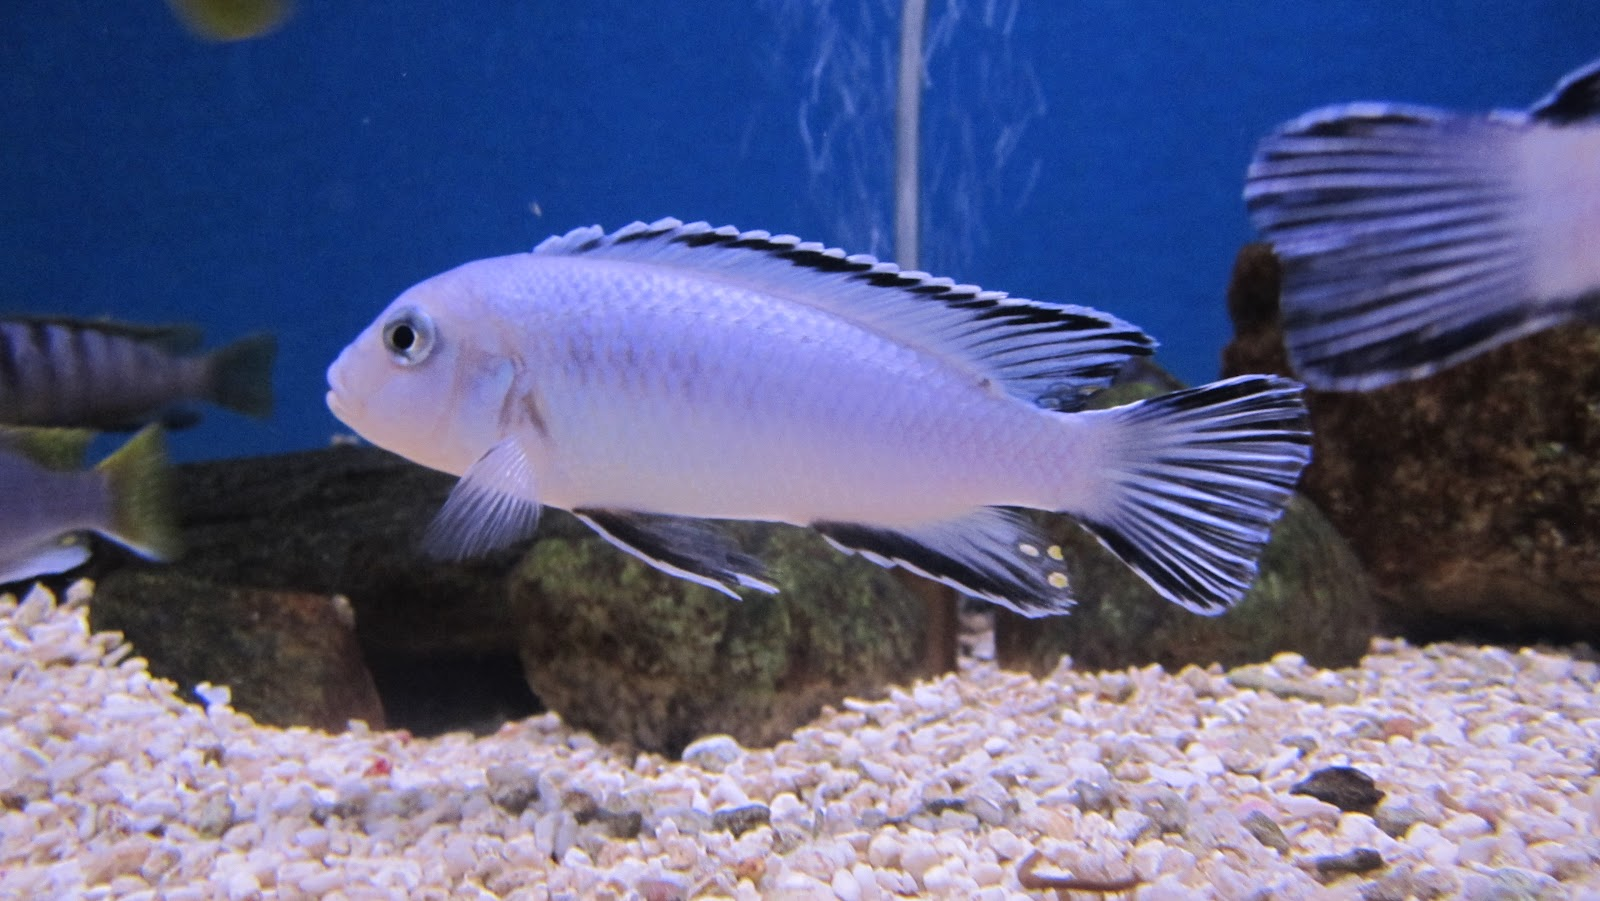 Mal tang fish african cichlids misplaced pics 8 31 12 for African cichlid fish